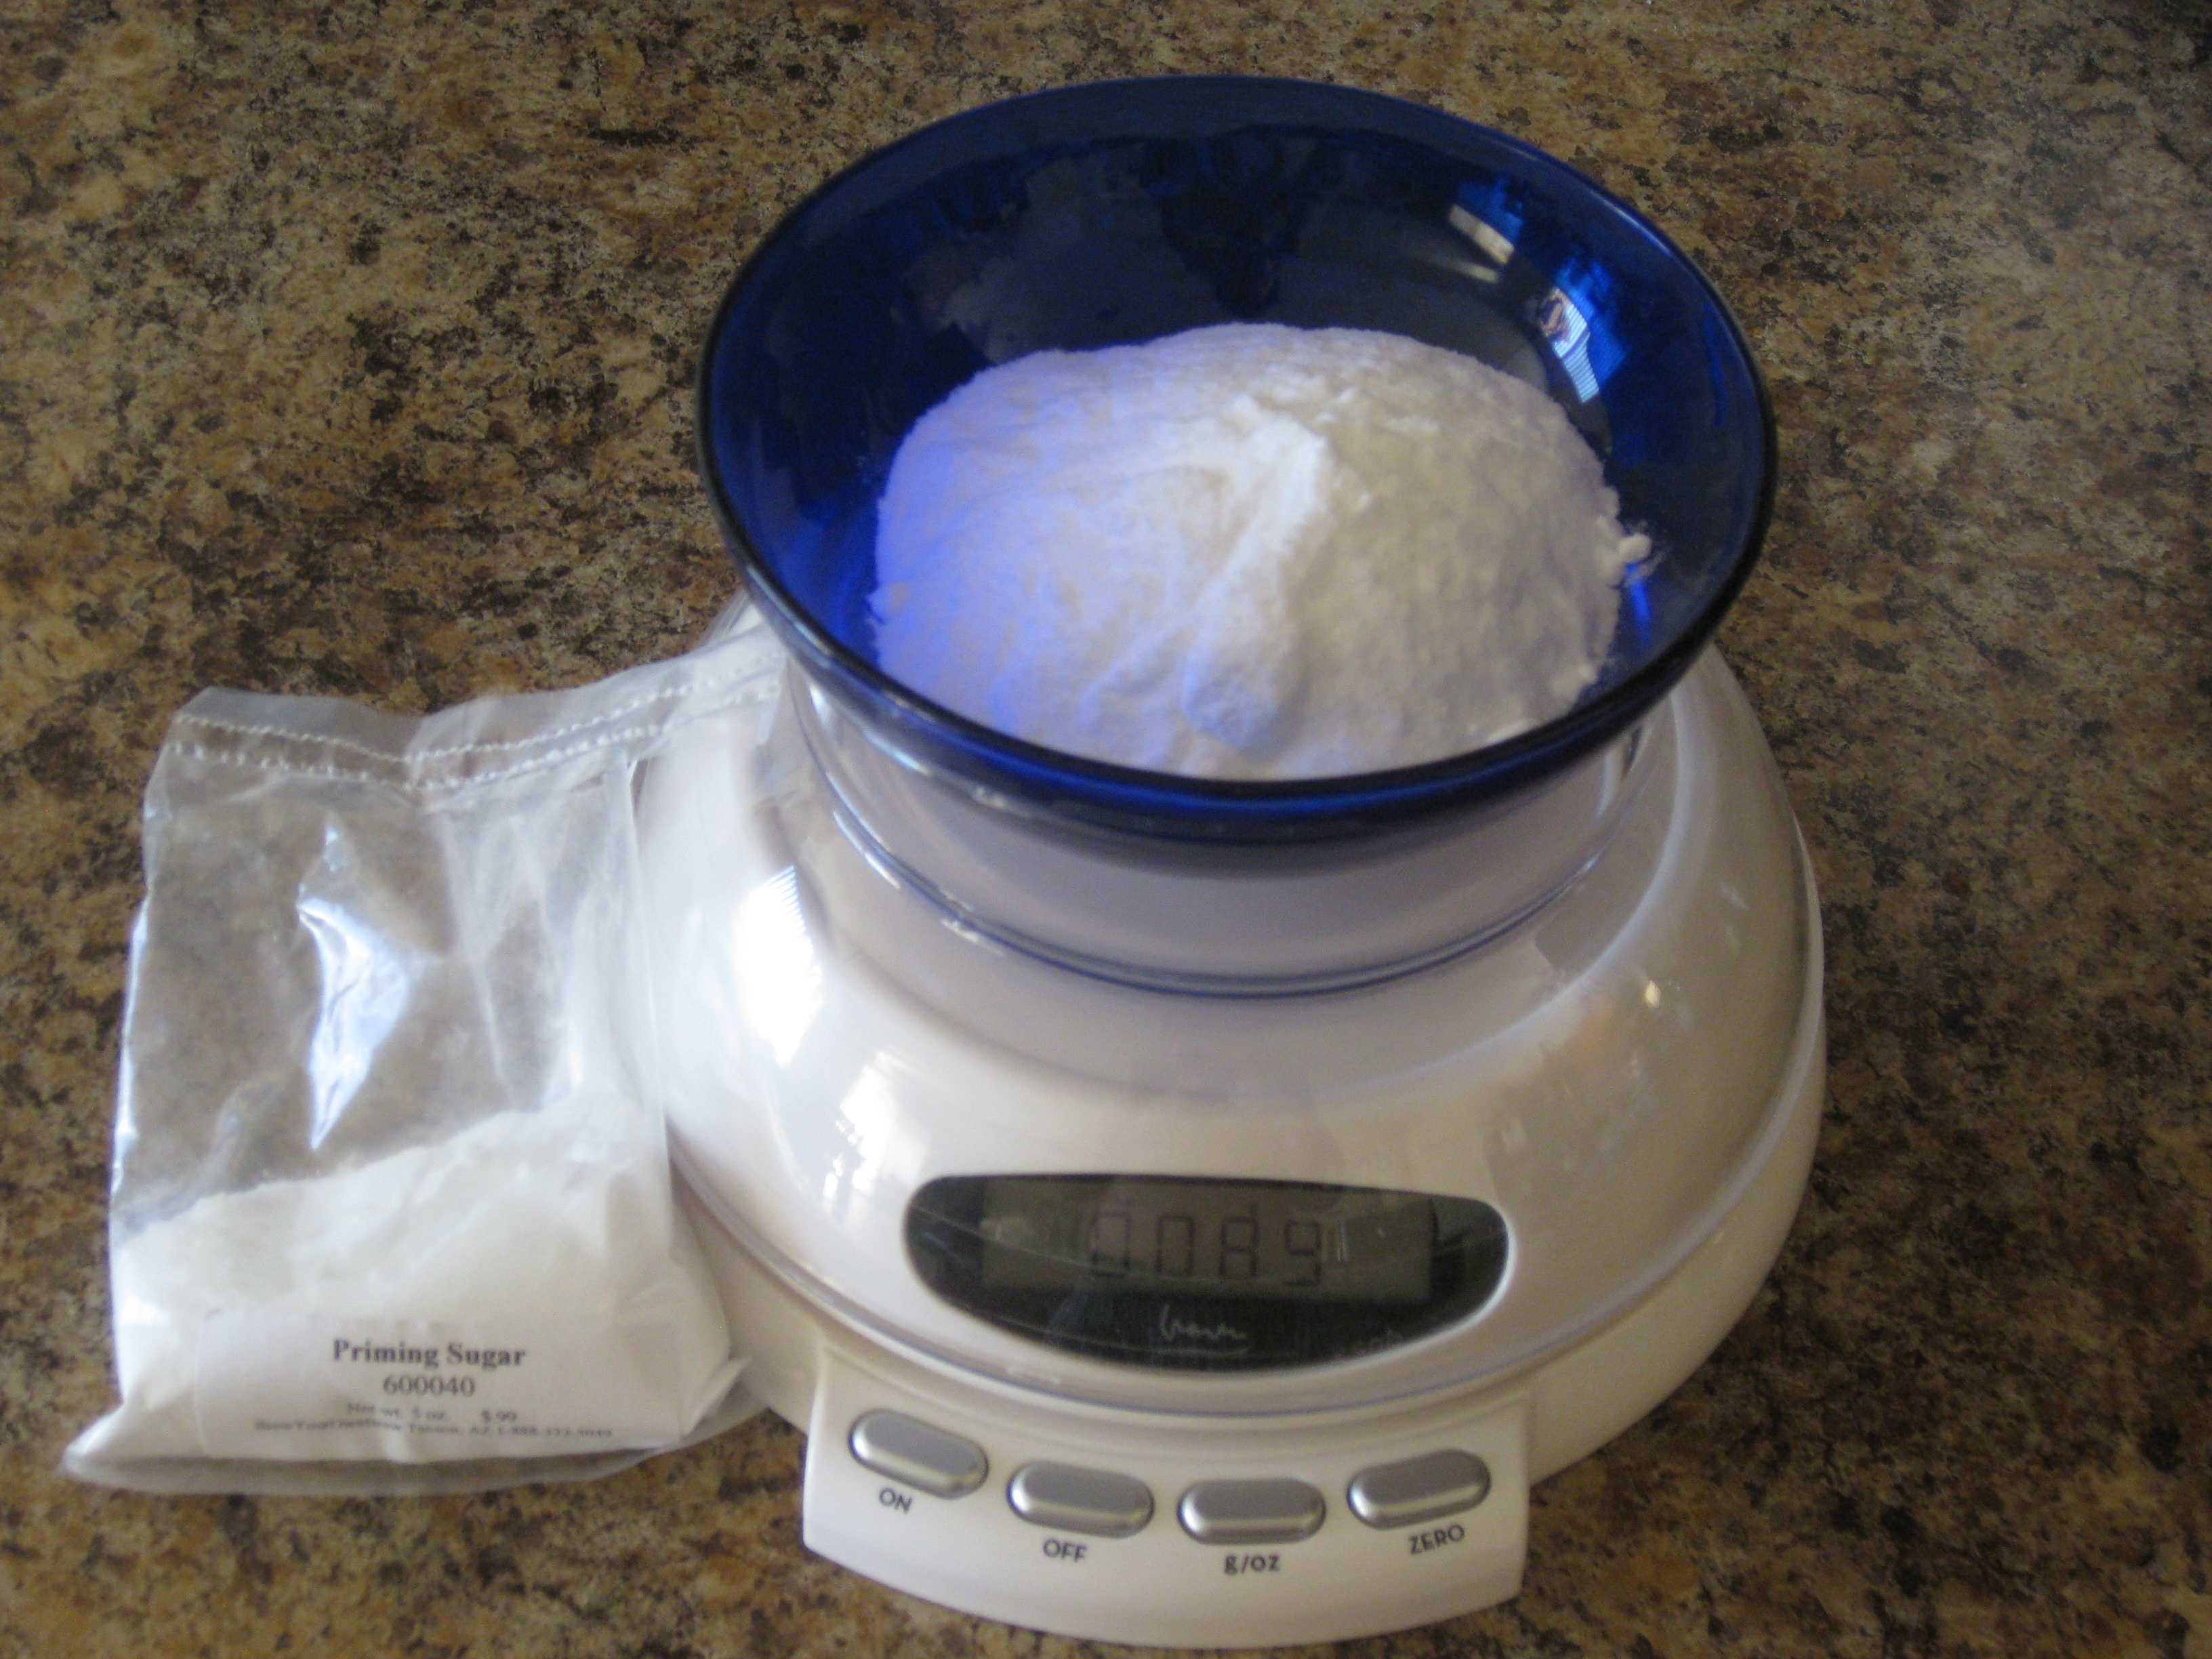 Weighing Priming Sugar with a Digital Scale